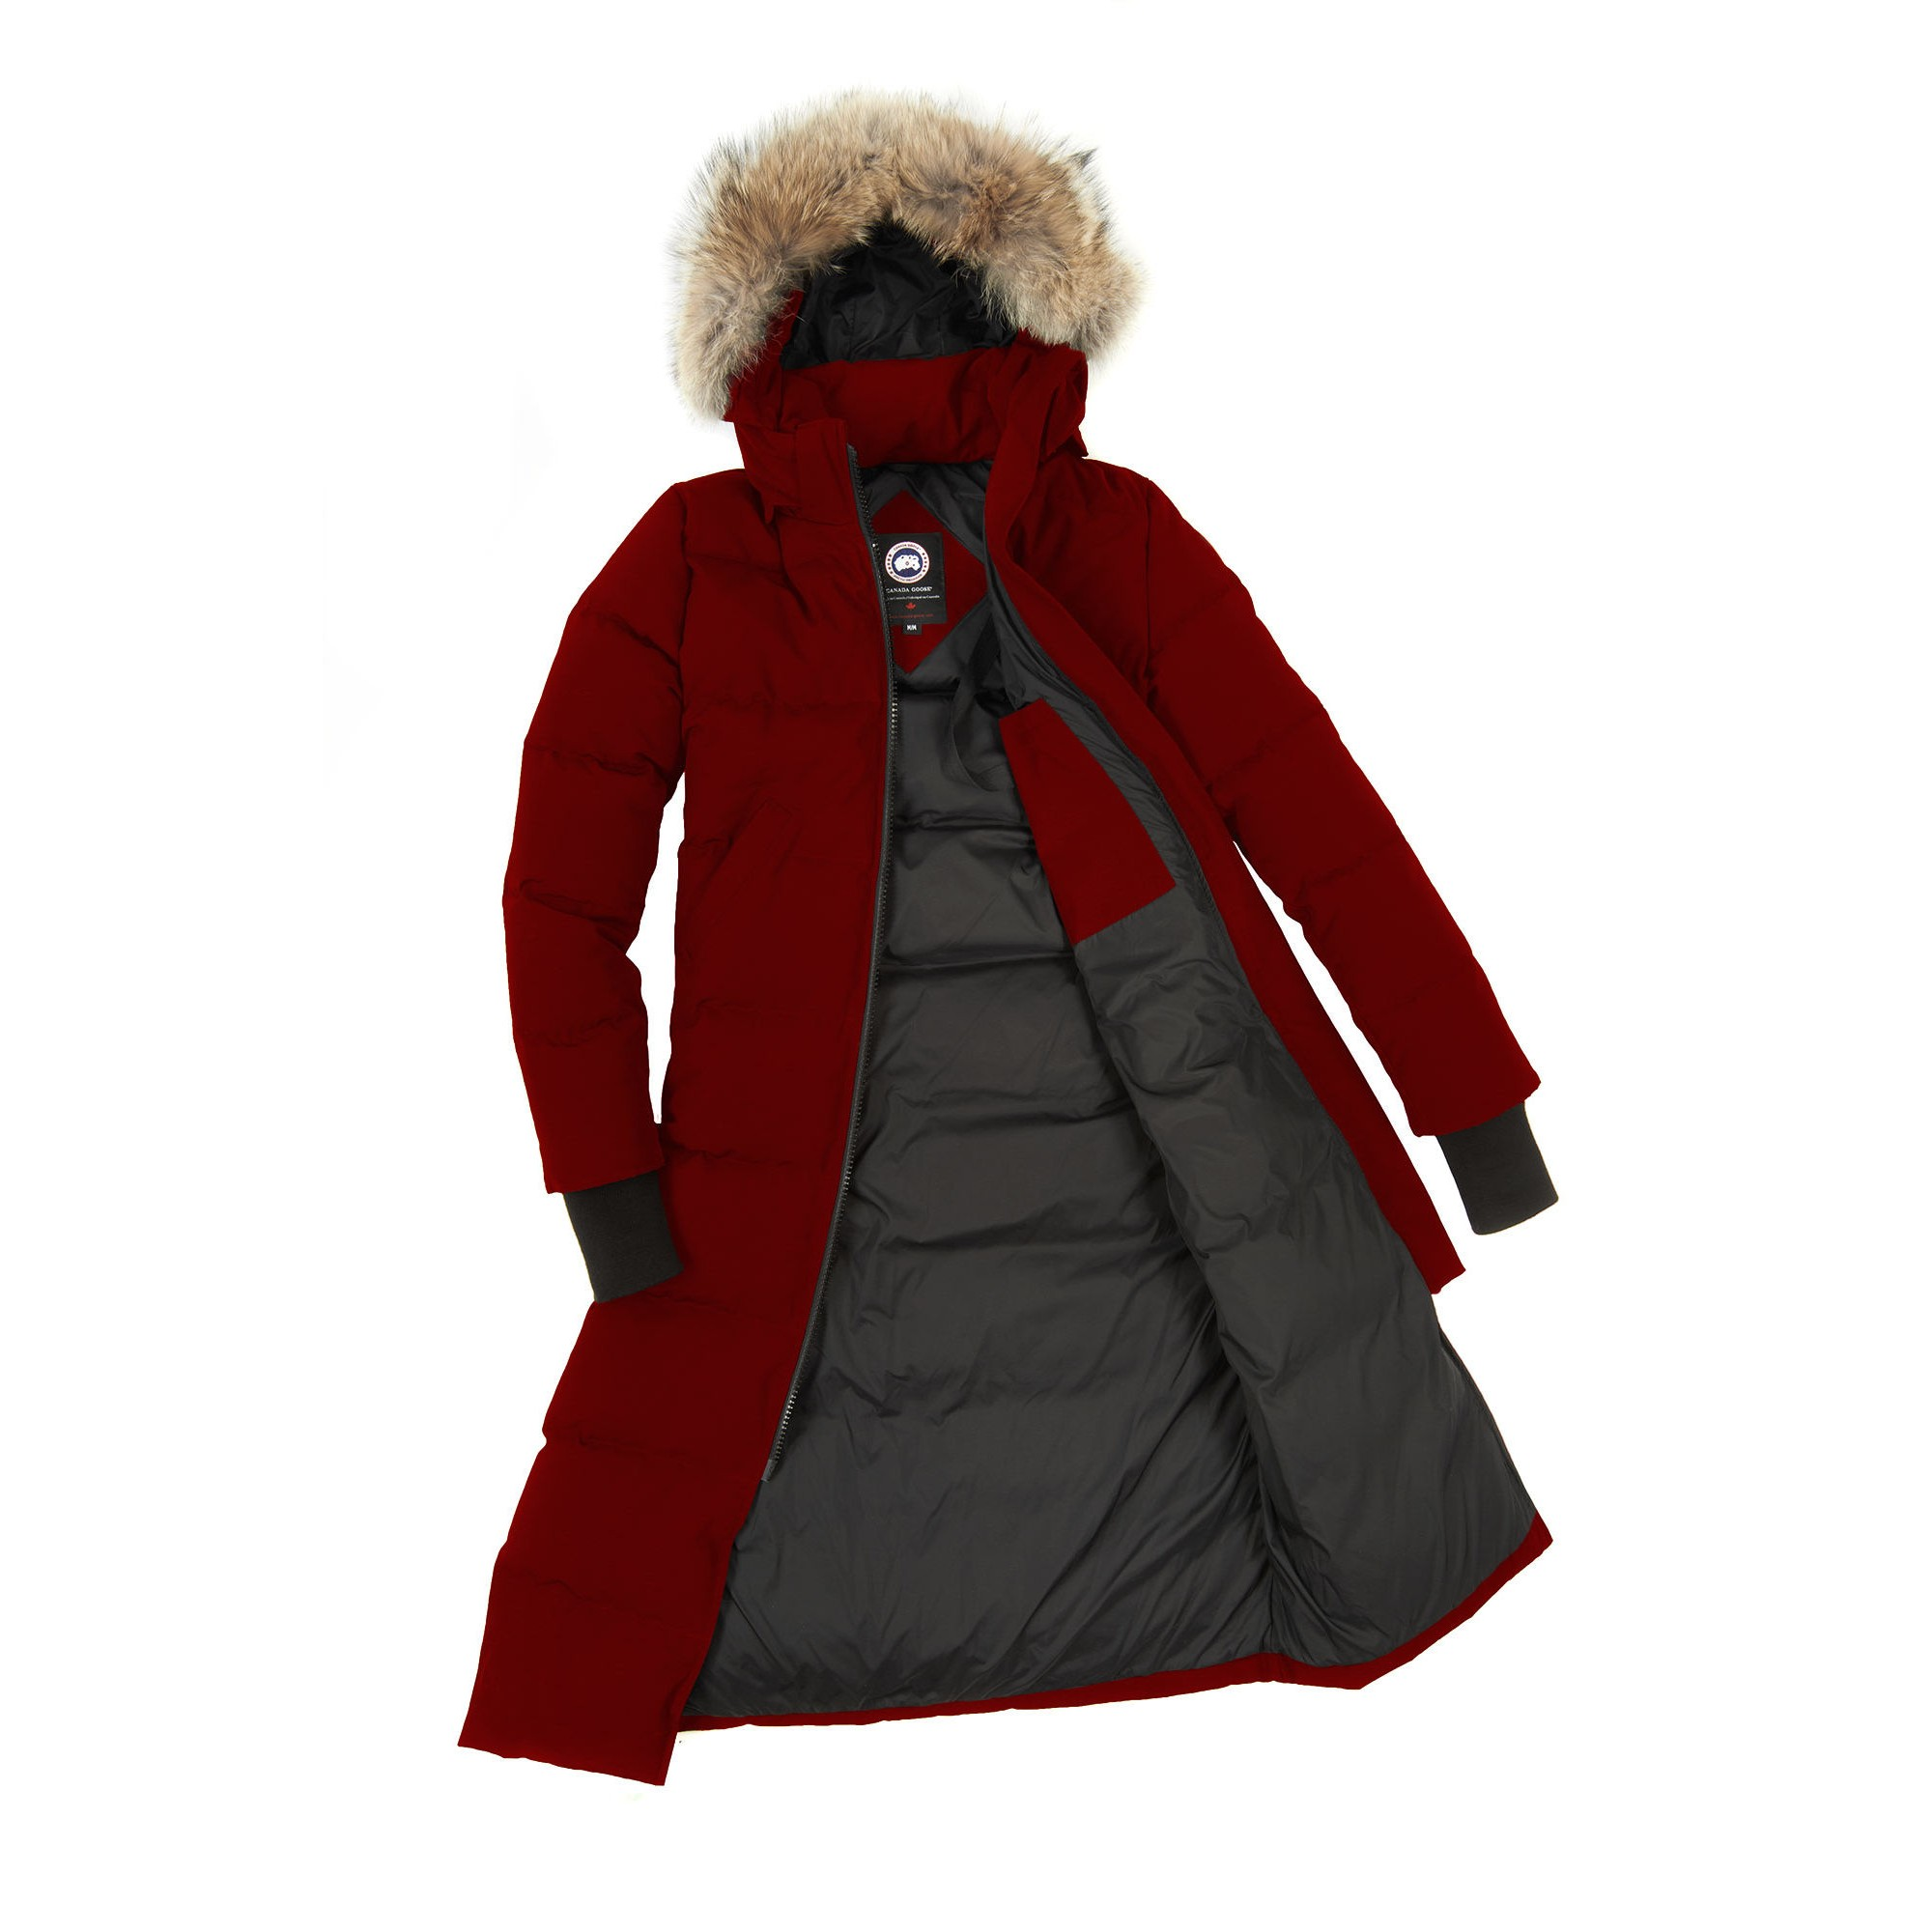 5bacf4737a09 ... low price canada goose mystique parka women redwood 3035l. display  gallery item 1 display gallery